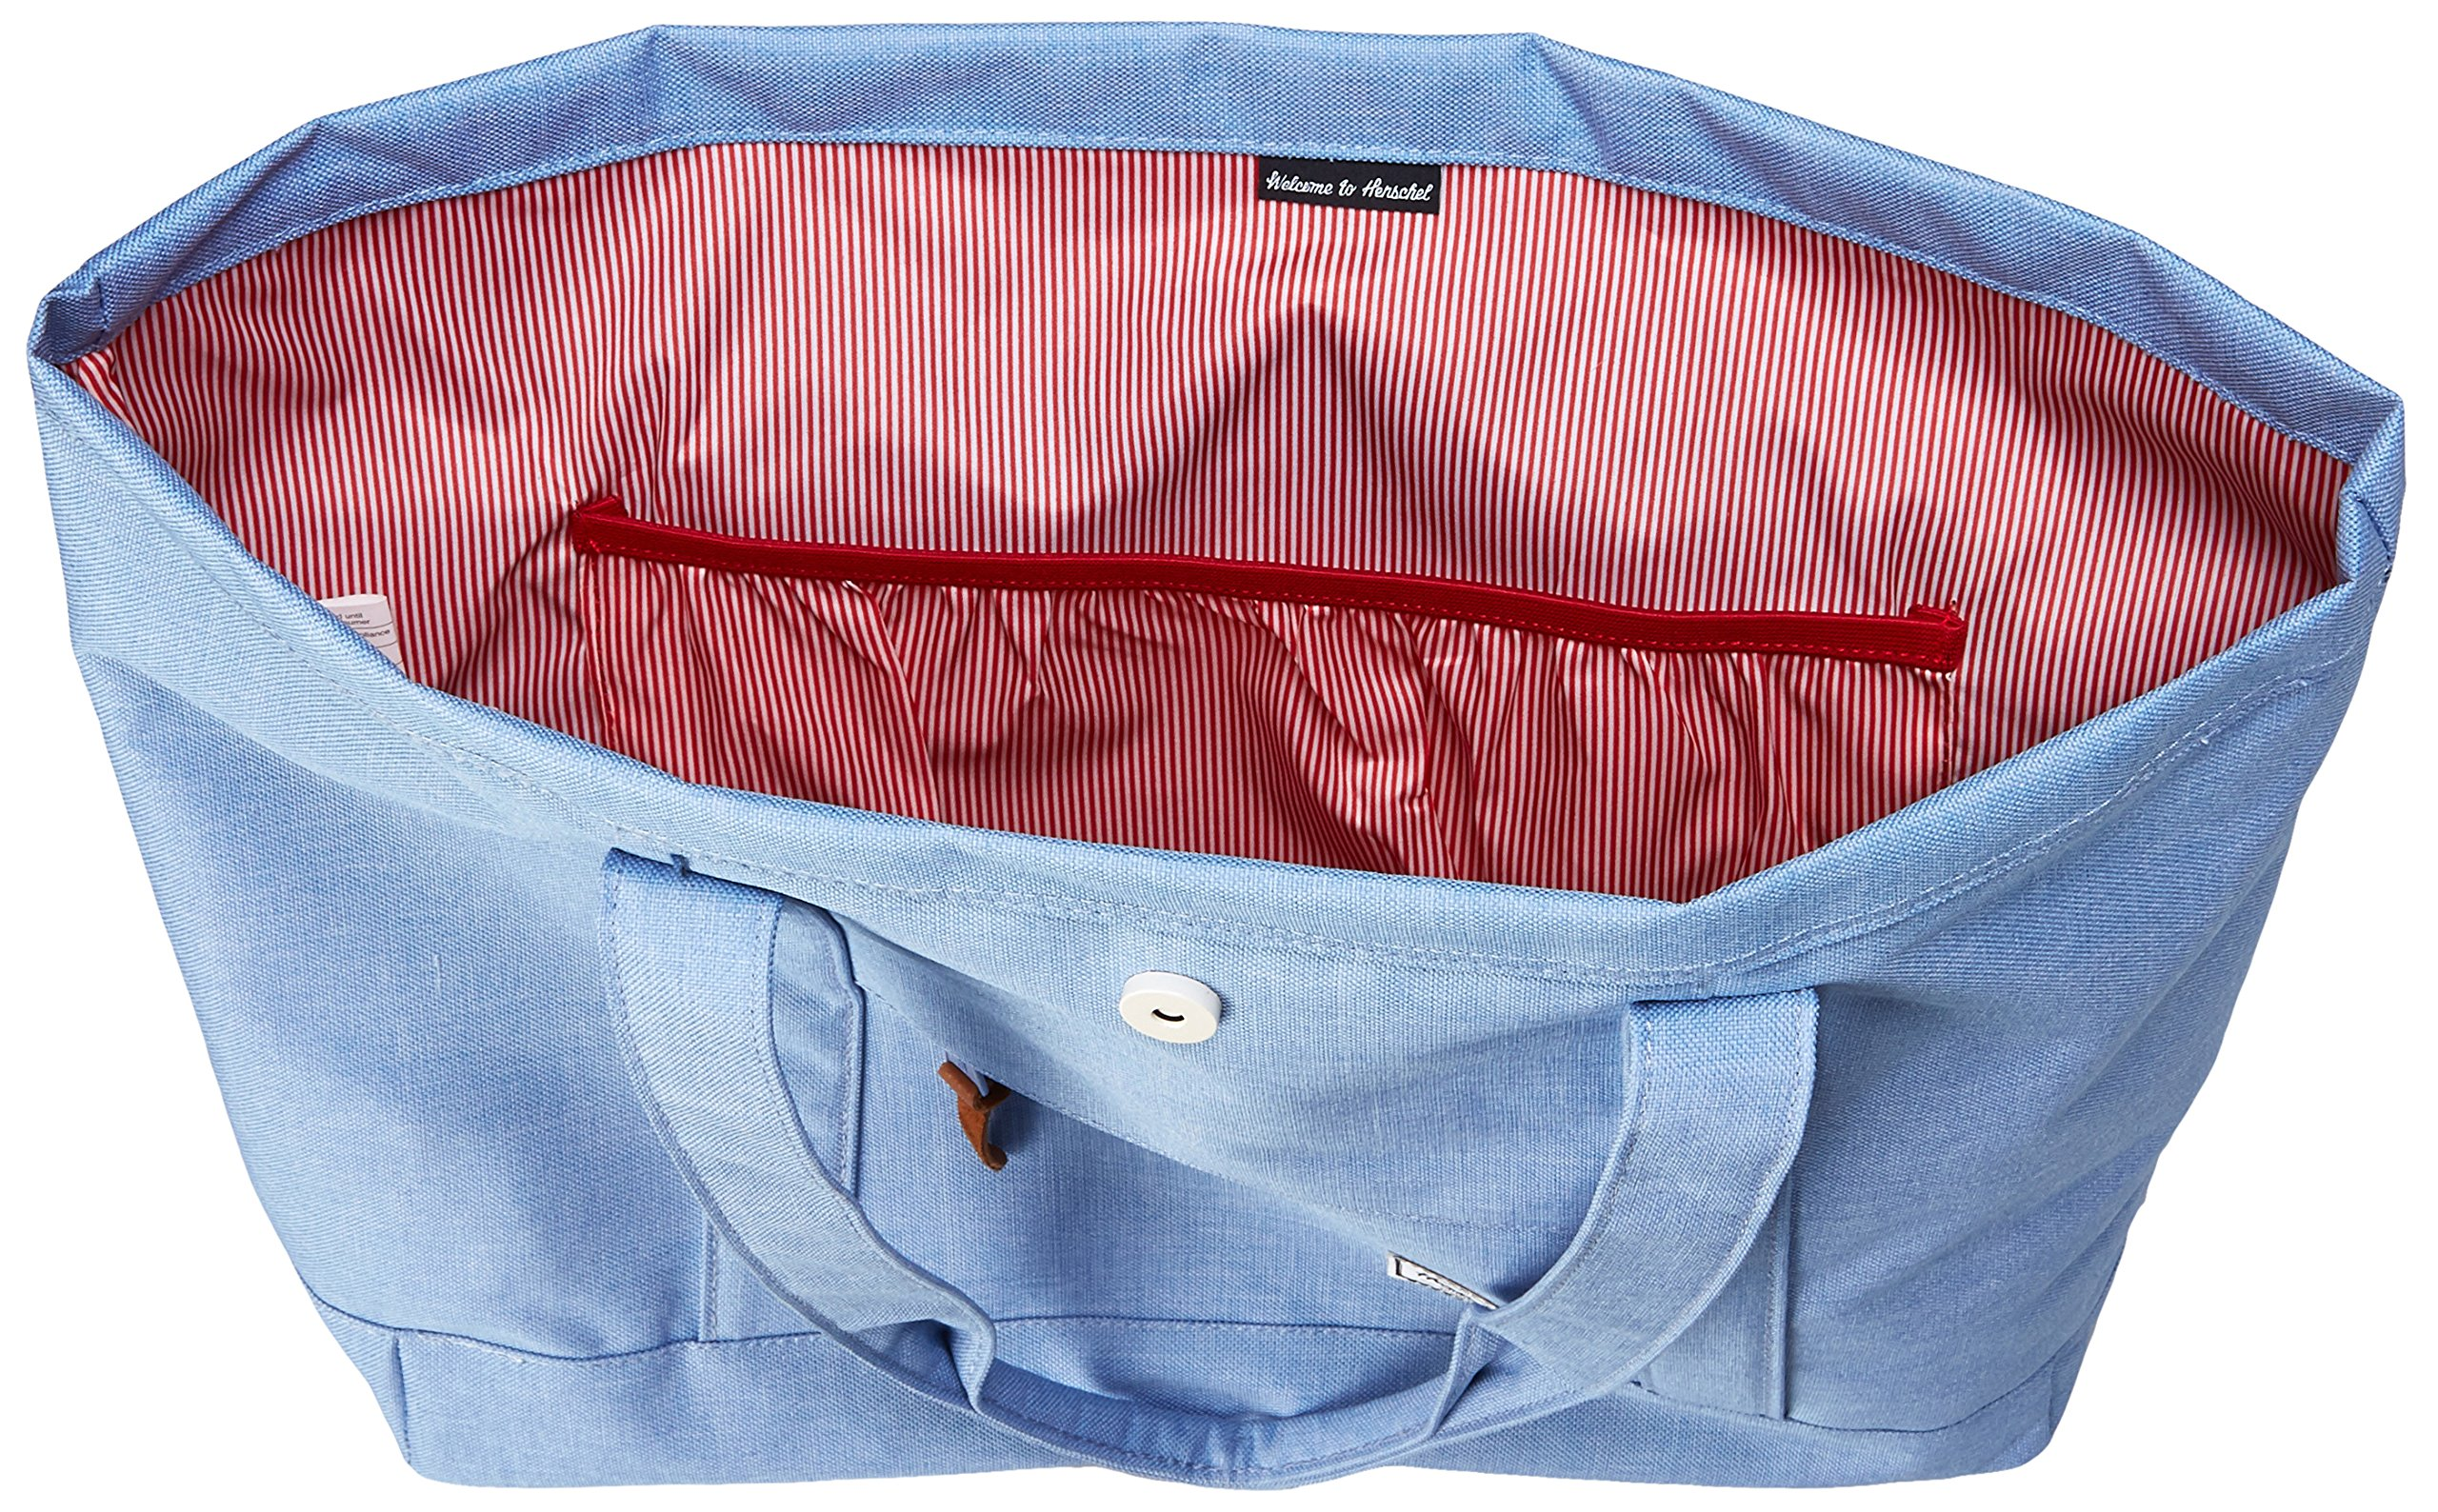 Herschel Supply Co. Market X-Large Travel Tote, Chambray, One Size by Herschel Supply Co. (Image #8)